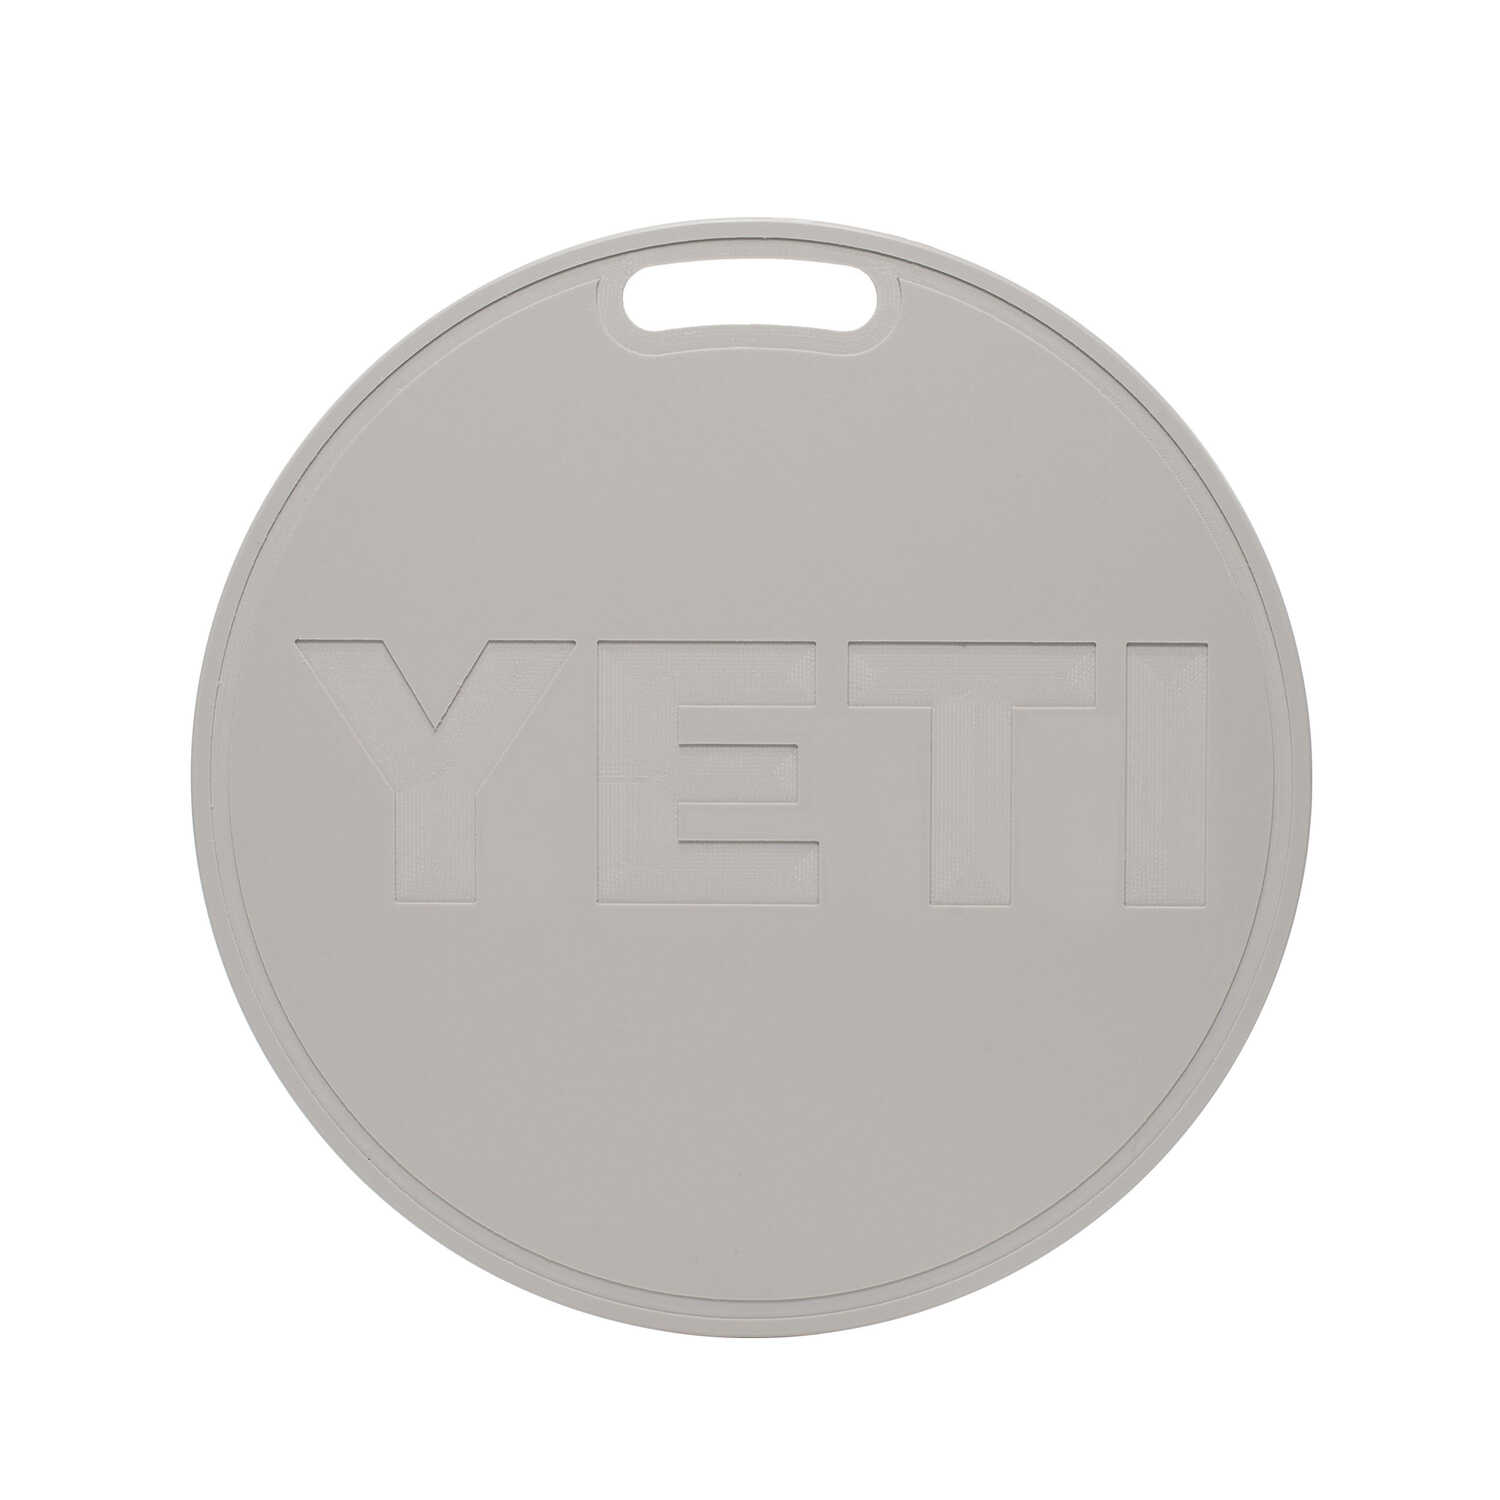 YETI  Tank  Lid  Gray  1 each